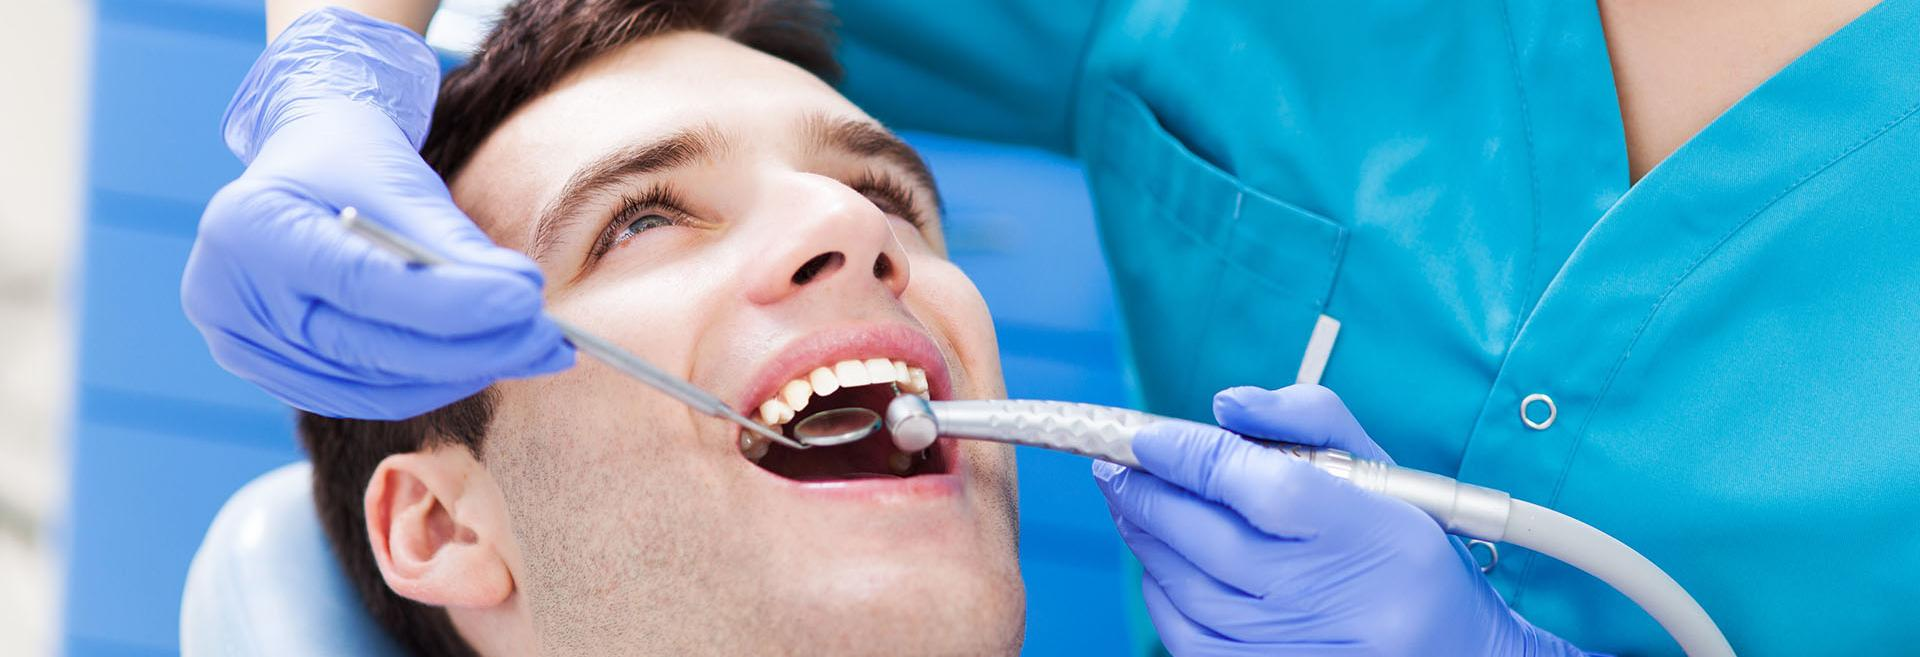 Family dental, teeth cleaning, fillings, crowns, dental implants, emergency dentistry